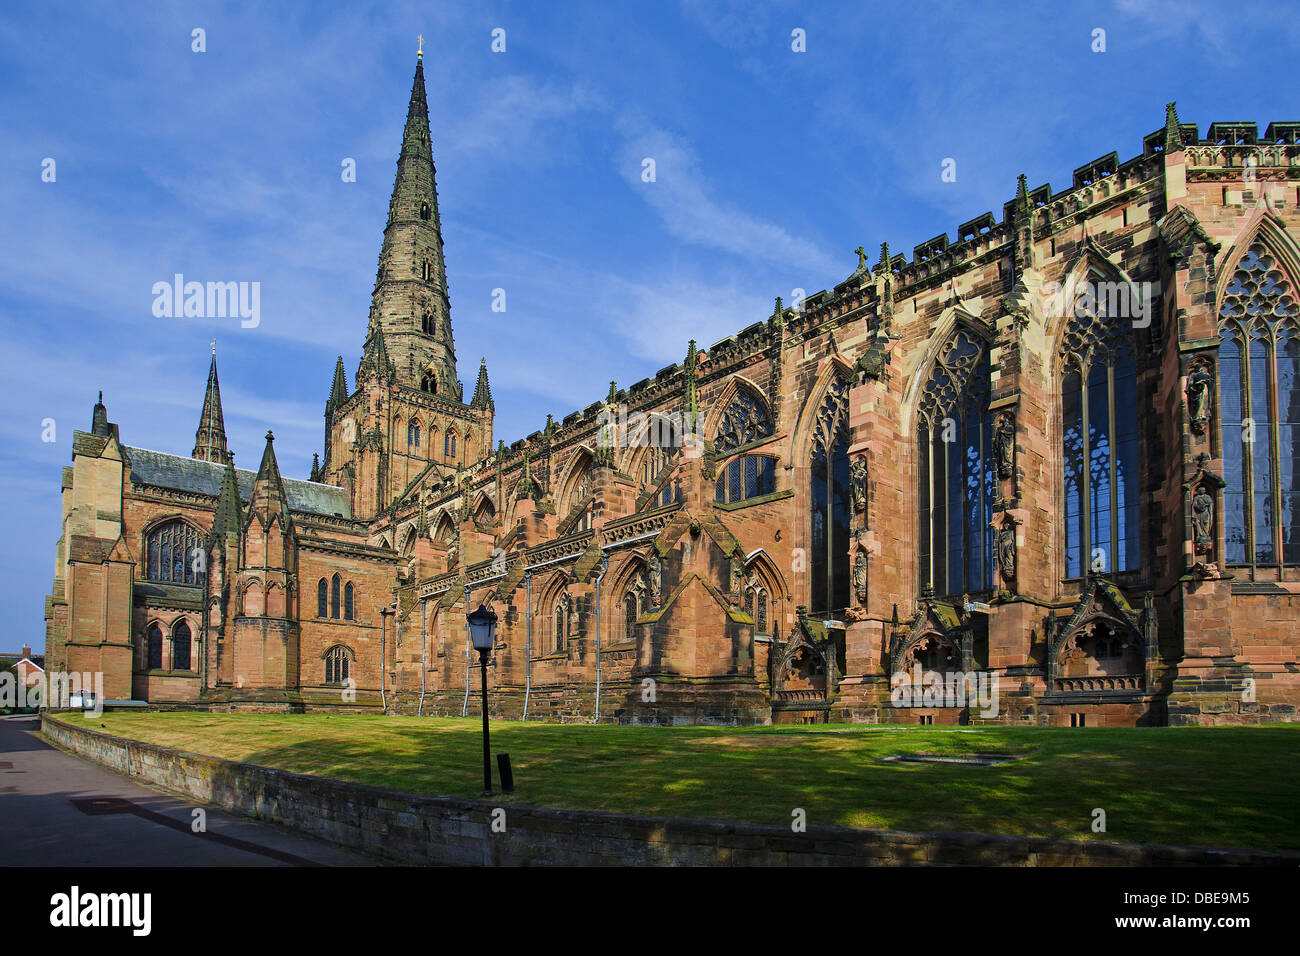 Exterior of Lichfield Cathedral, Lichfileld, Staffordshire, England, UK - Stock Image